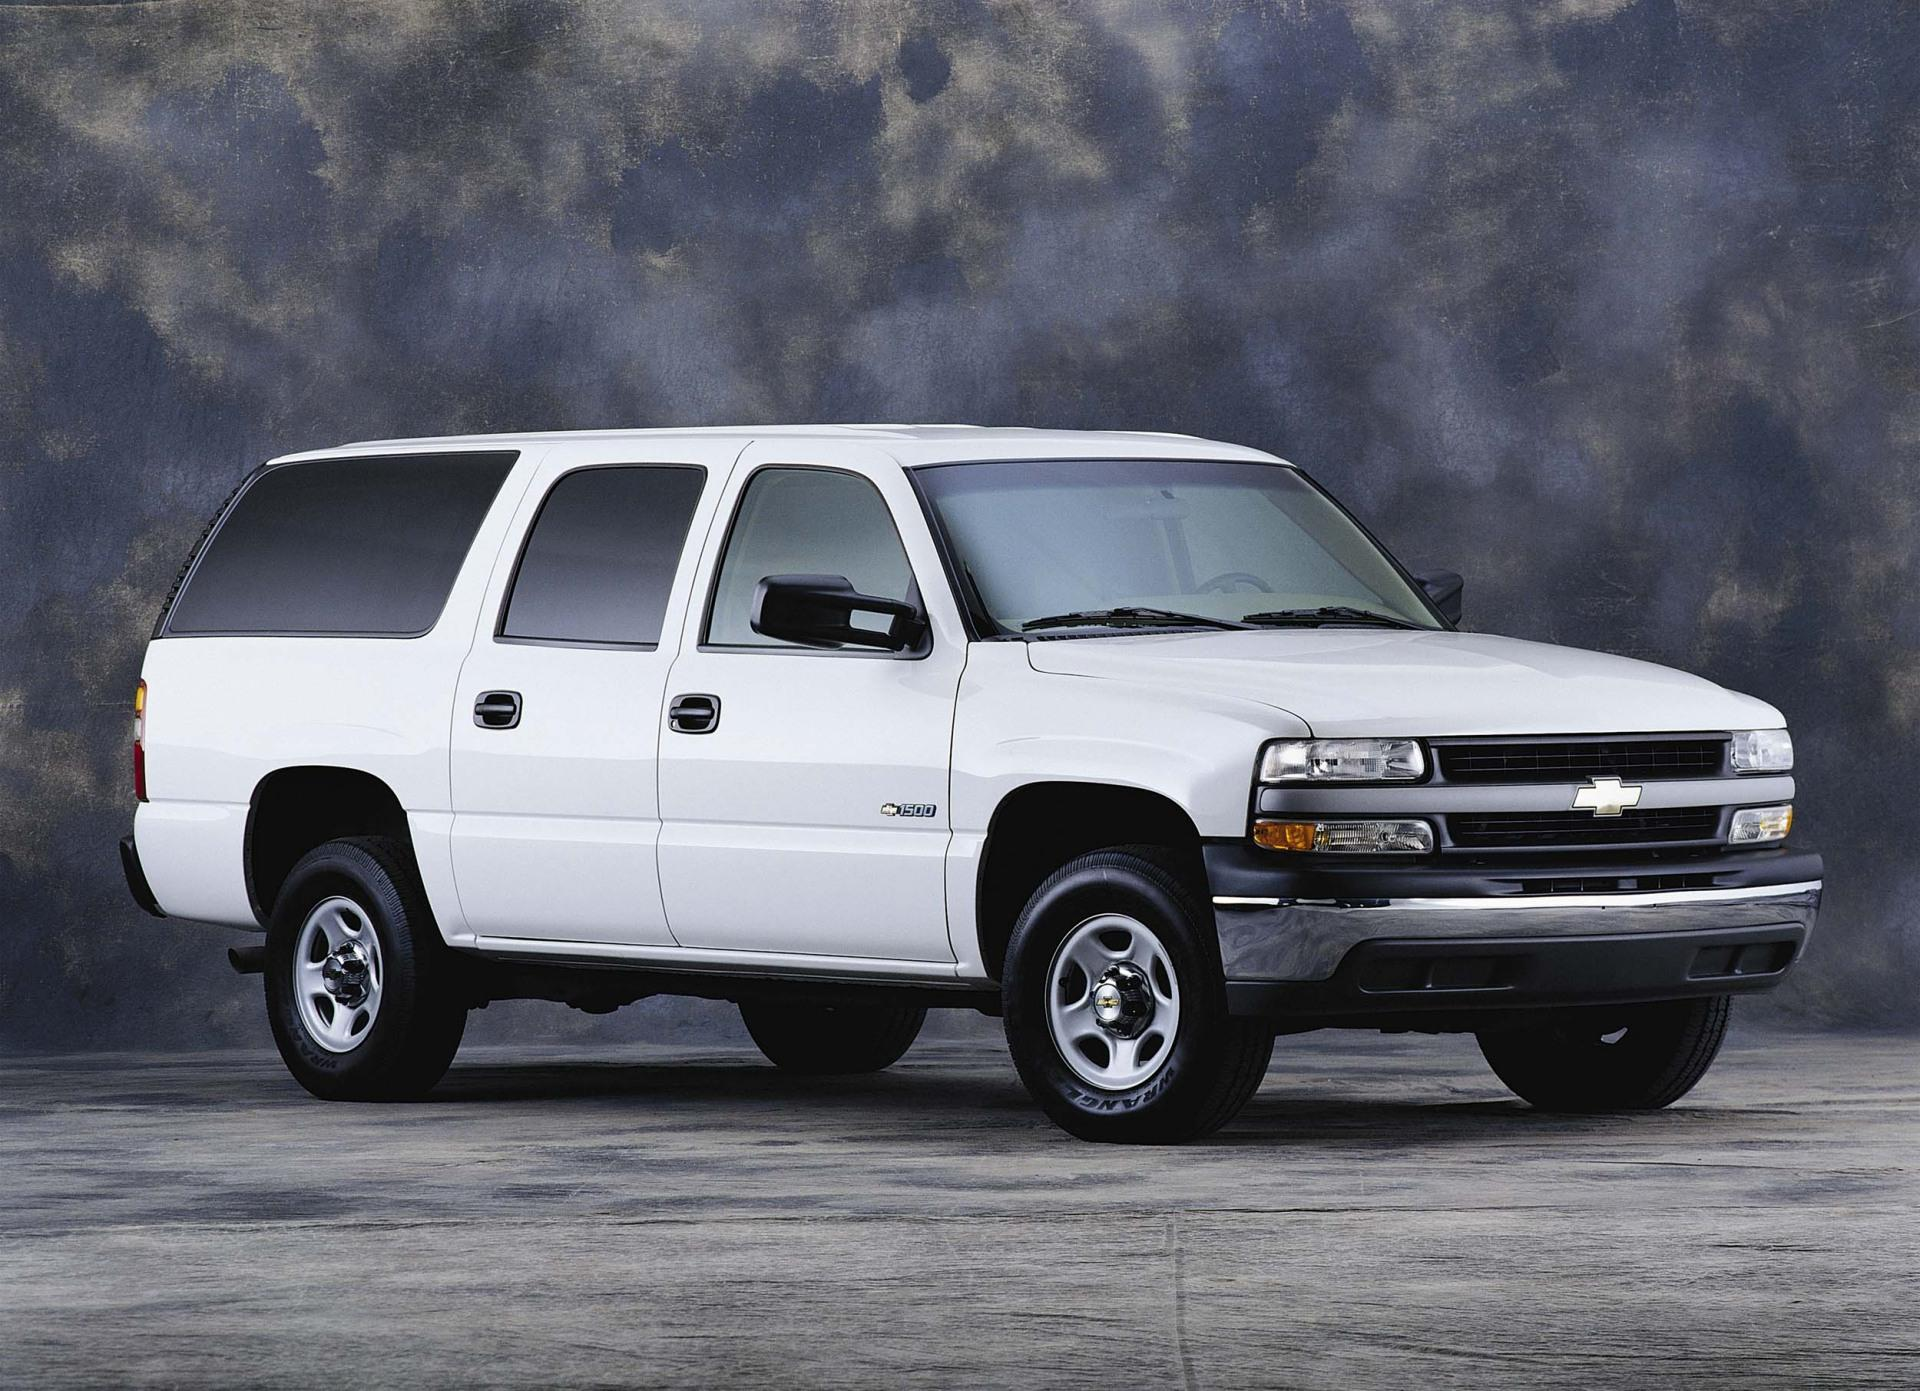 2001 Chevrolet Suburban History, Pictures, Value, Auction Sales, Research  and News